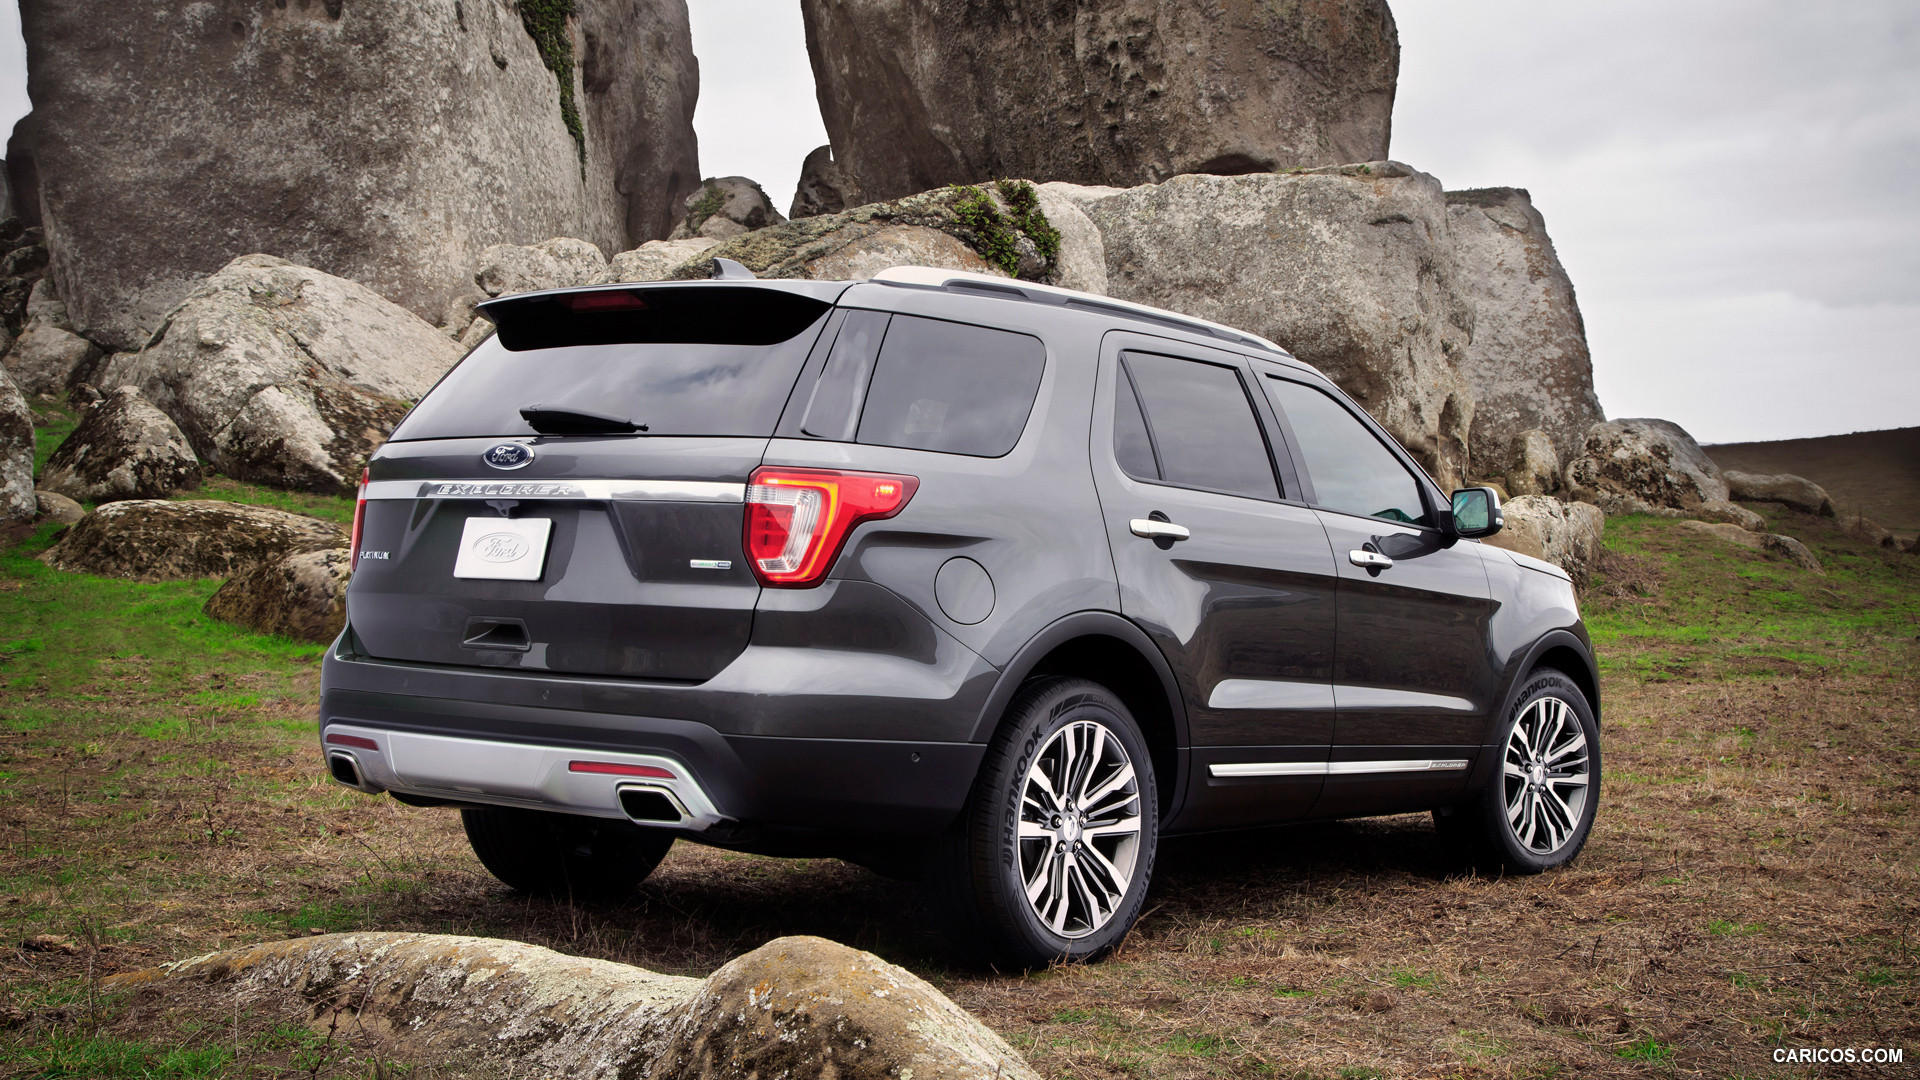 1920x1080 - Ford Explorer Wallpapers 23